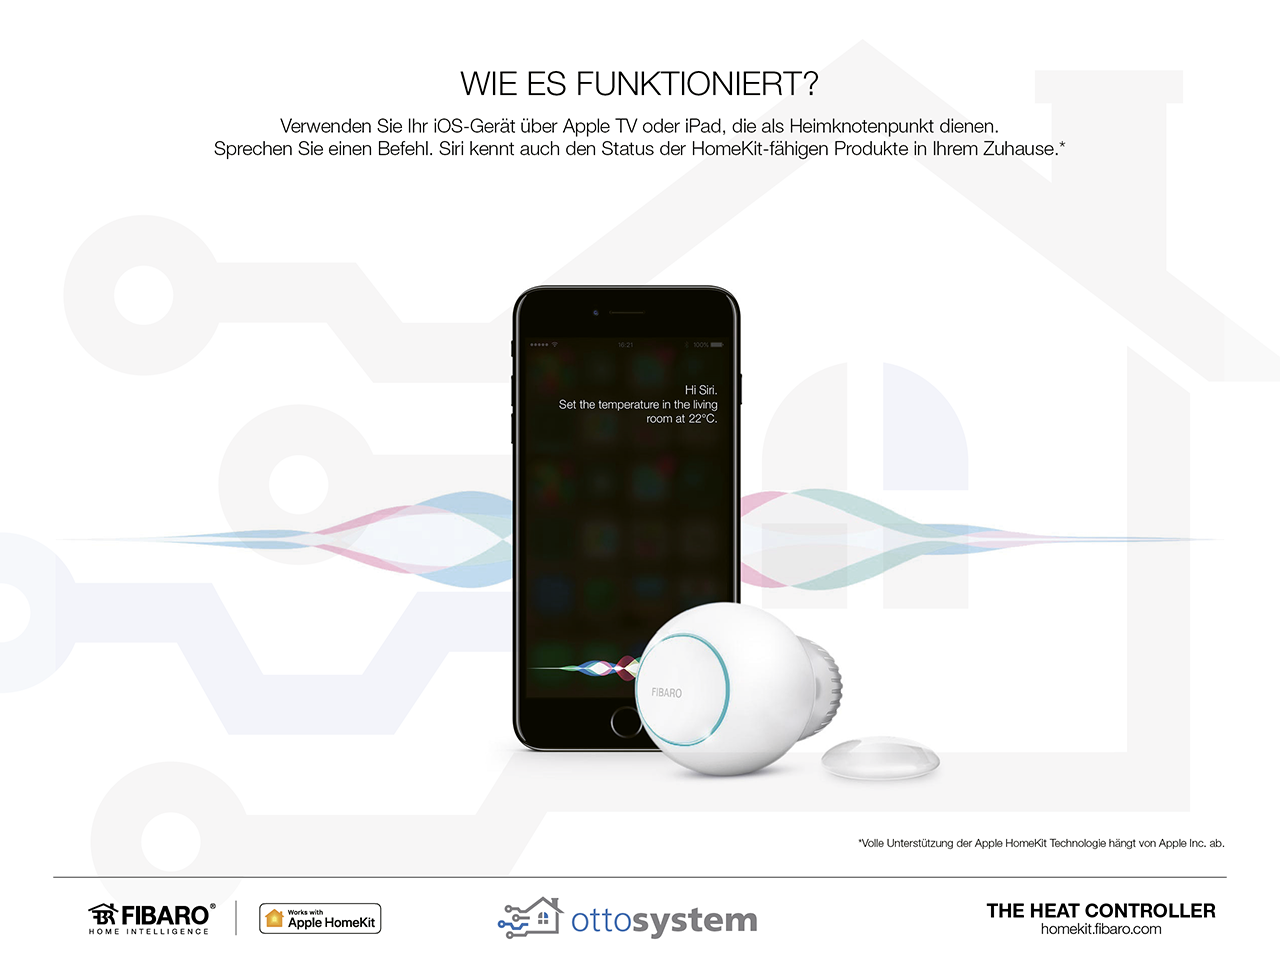 FIBARO_The-Heat-Controller-HK_ottosystem-07